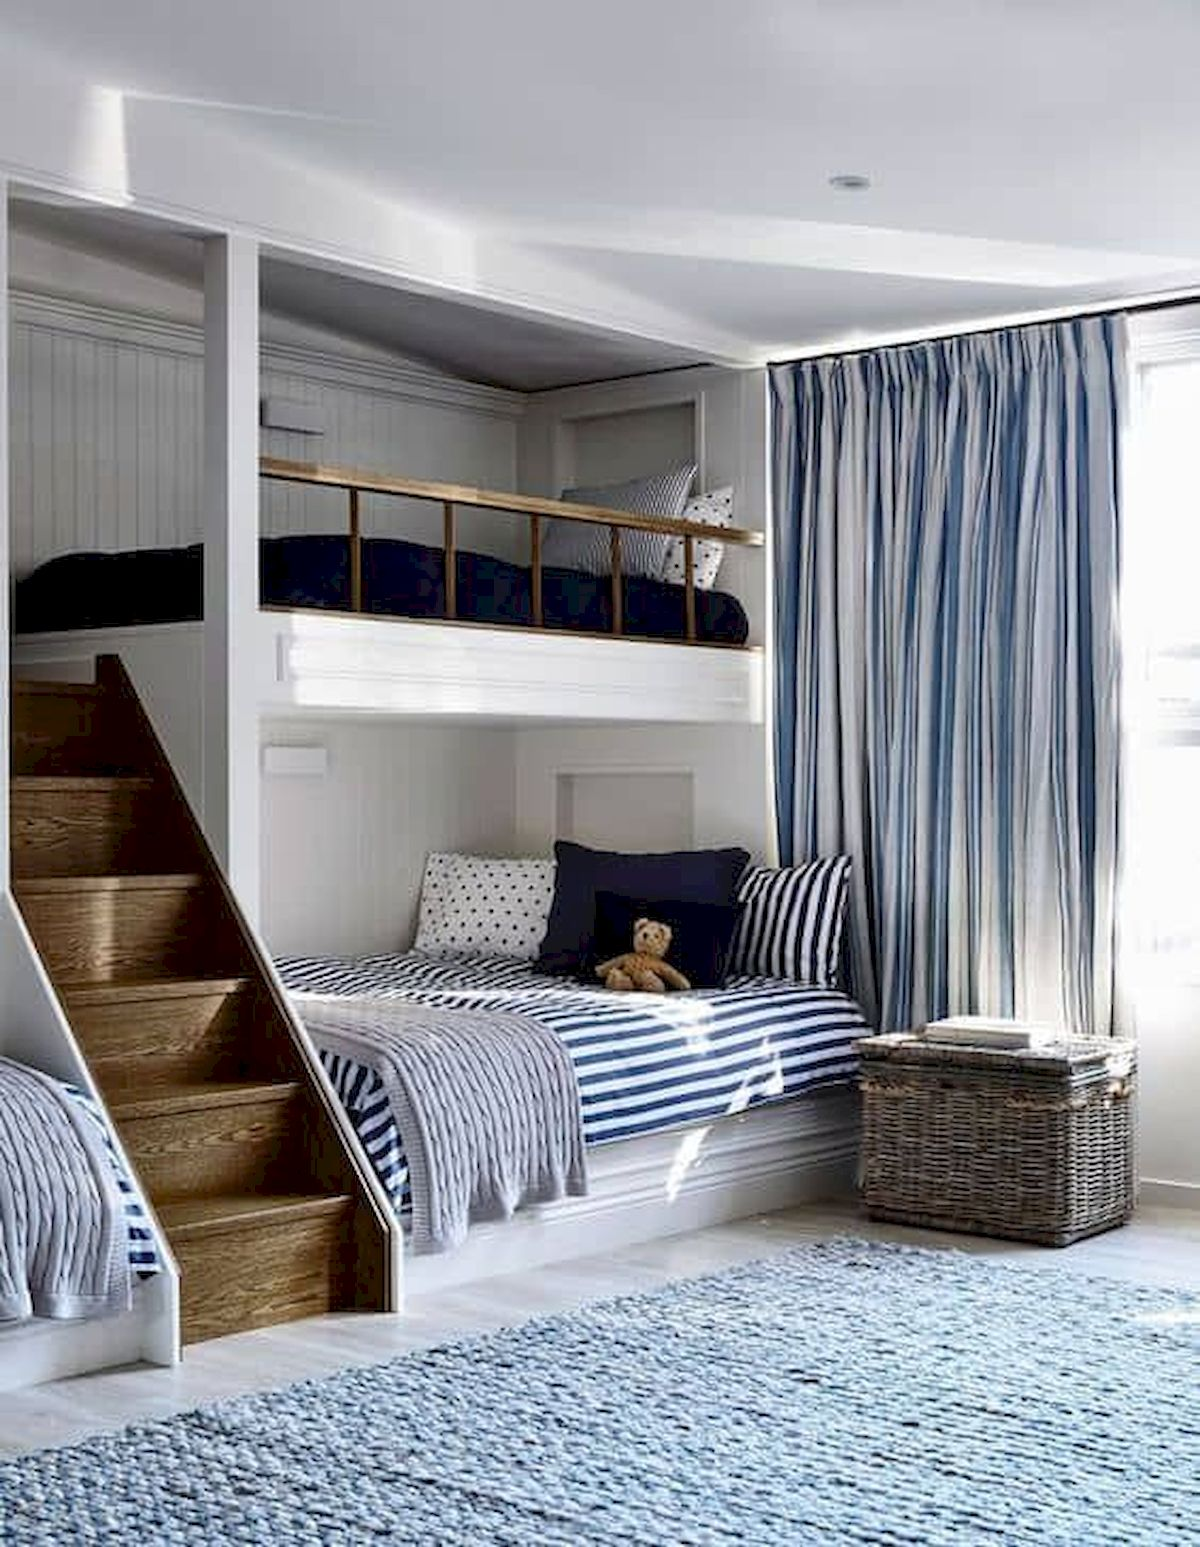 45 Cool Boys Bedroom Ideas to Try at Home (14)